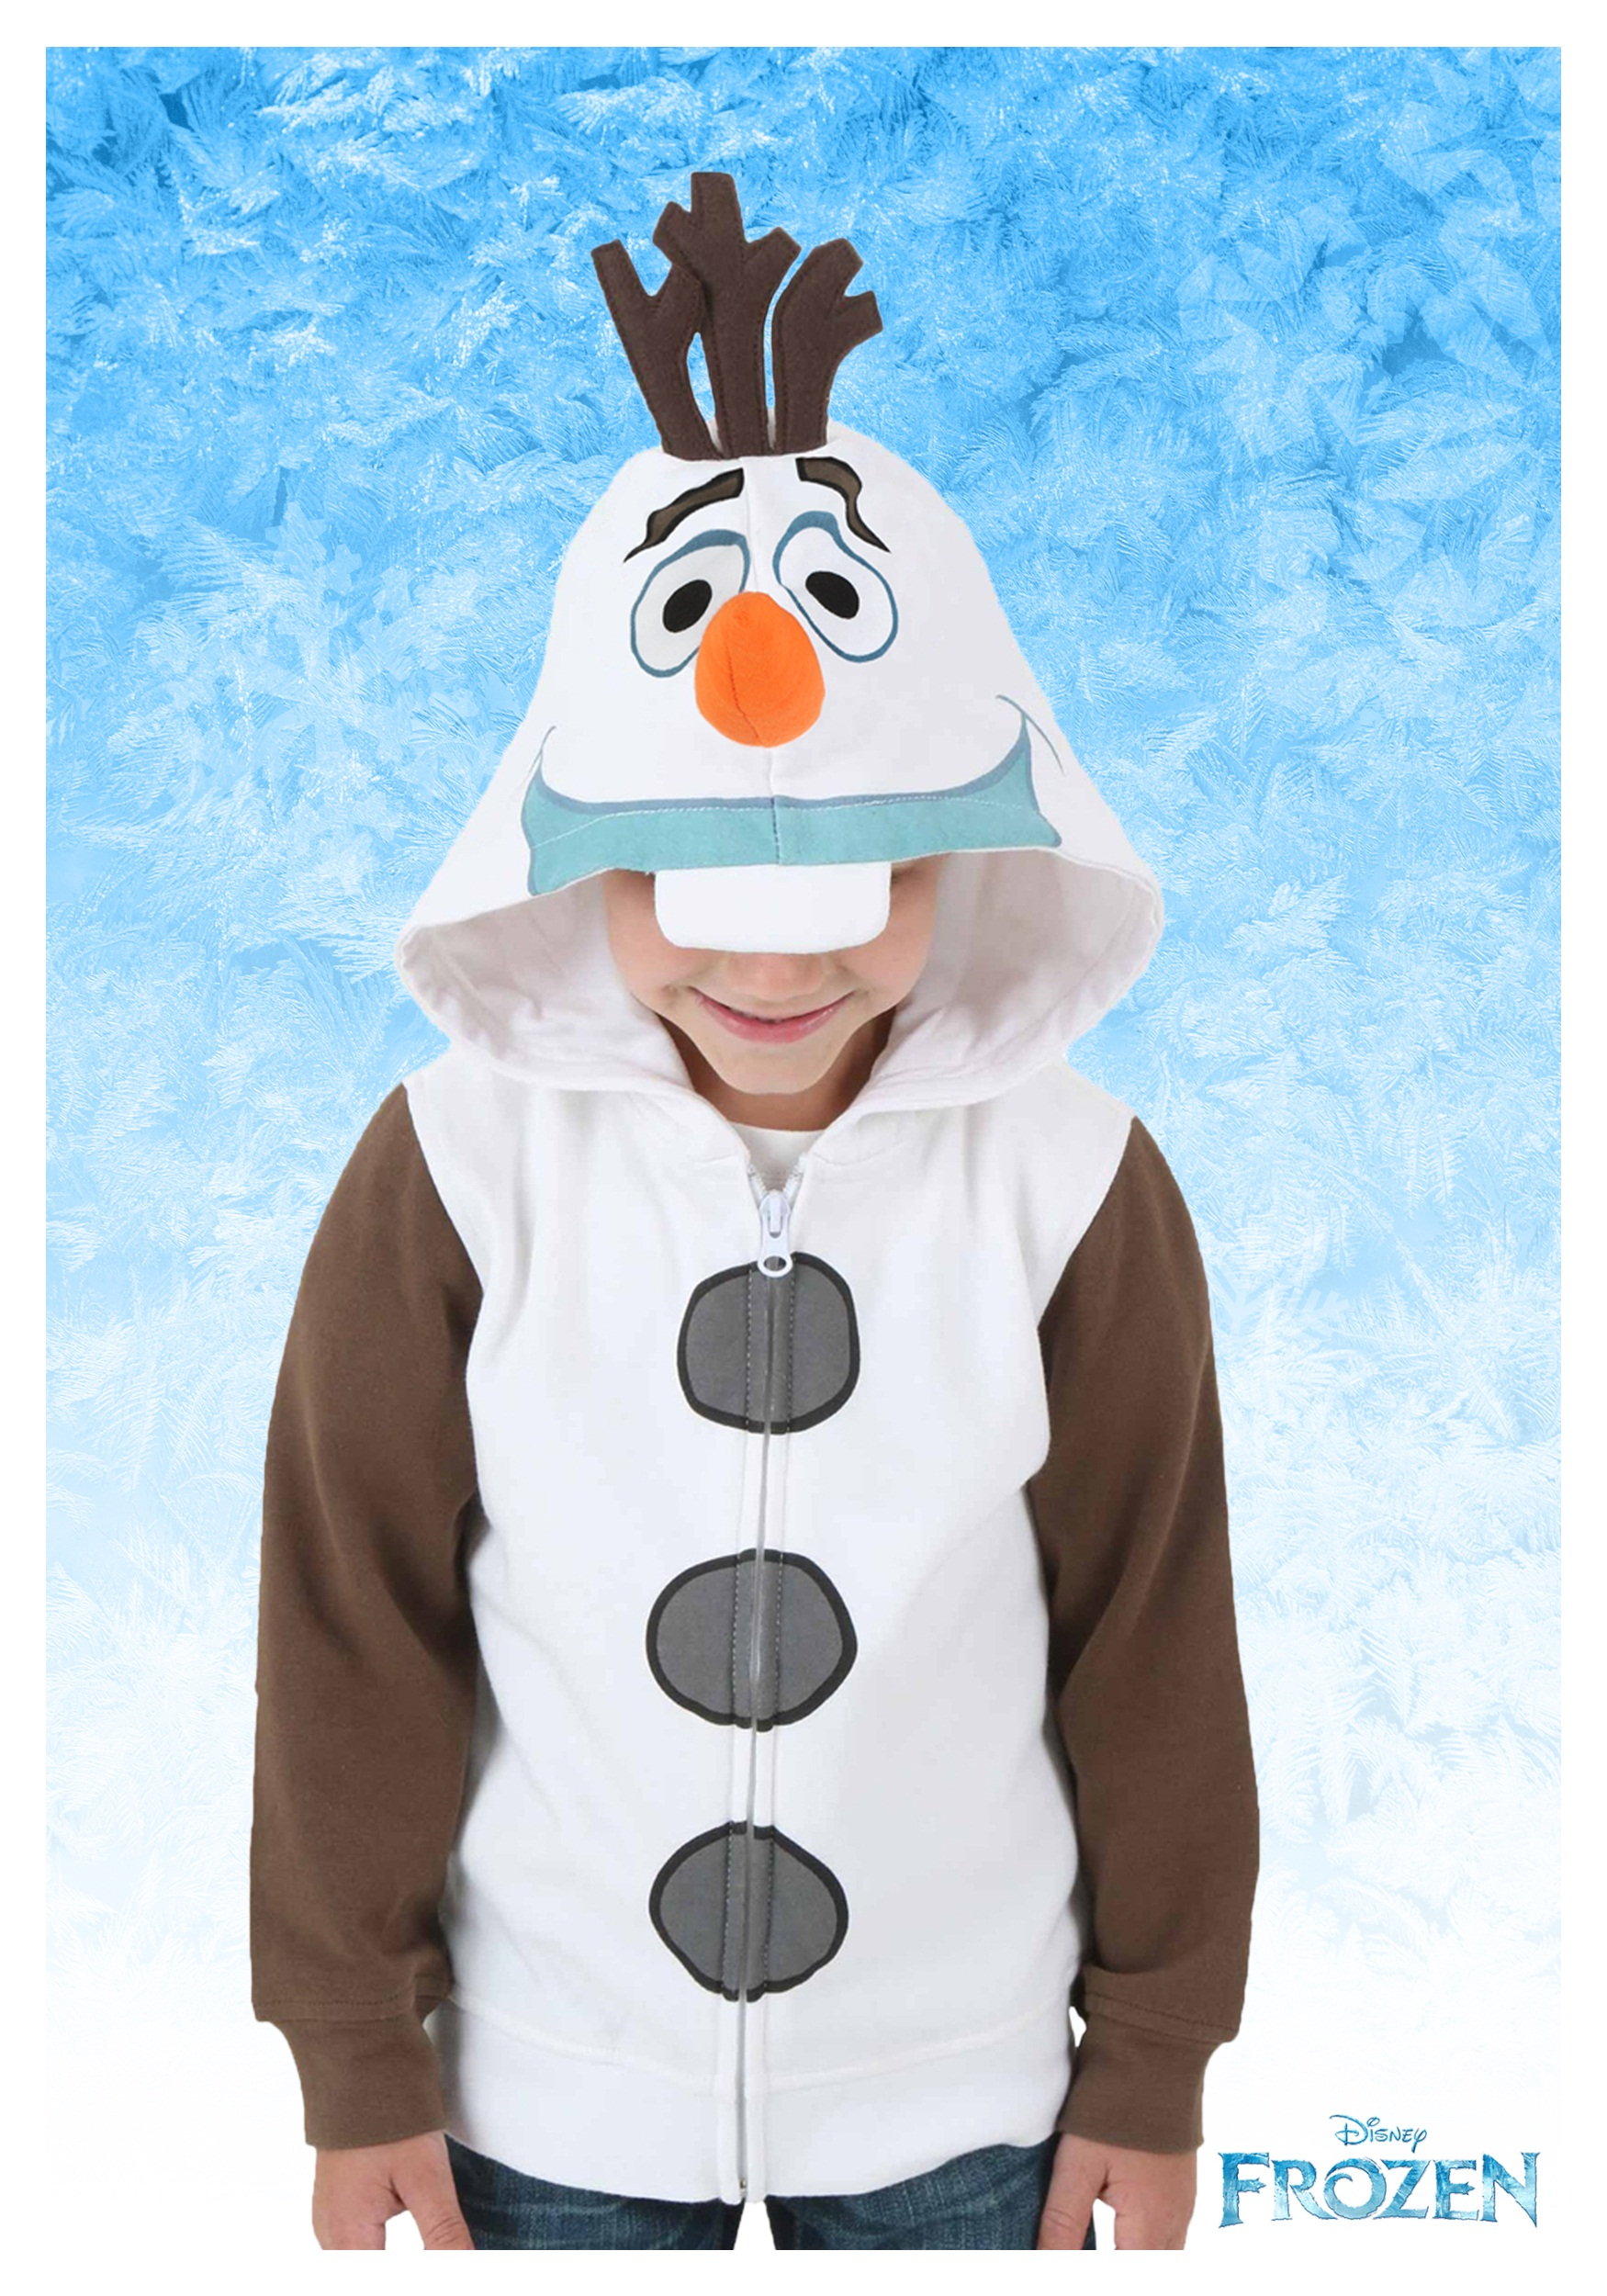 Kids Frozen I am Olaf Costume Hoodie